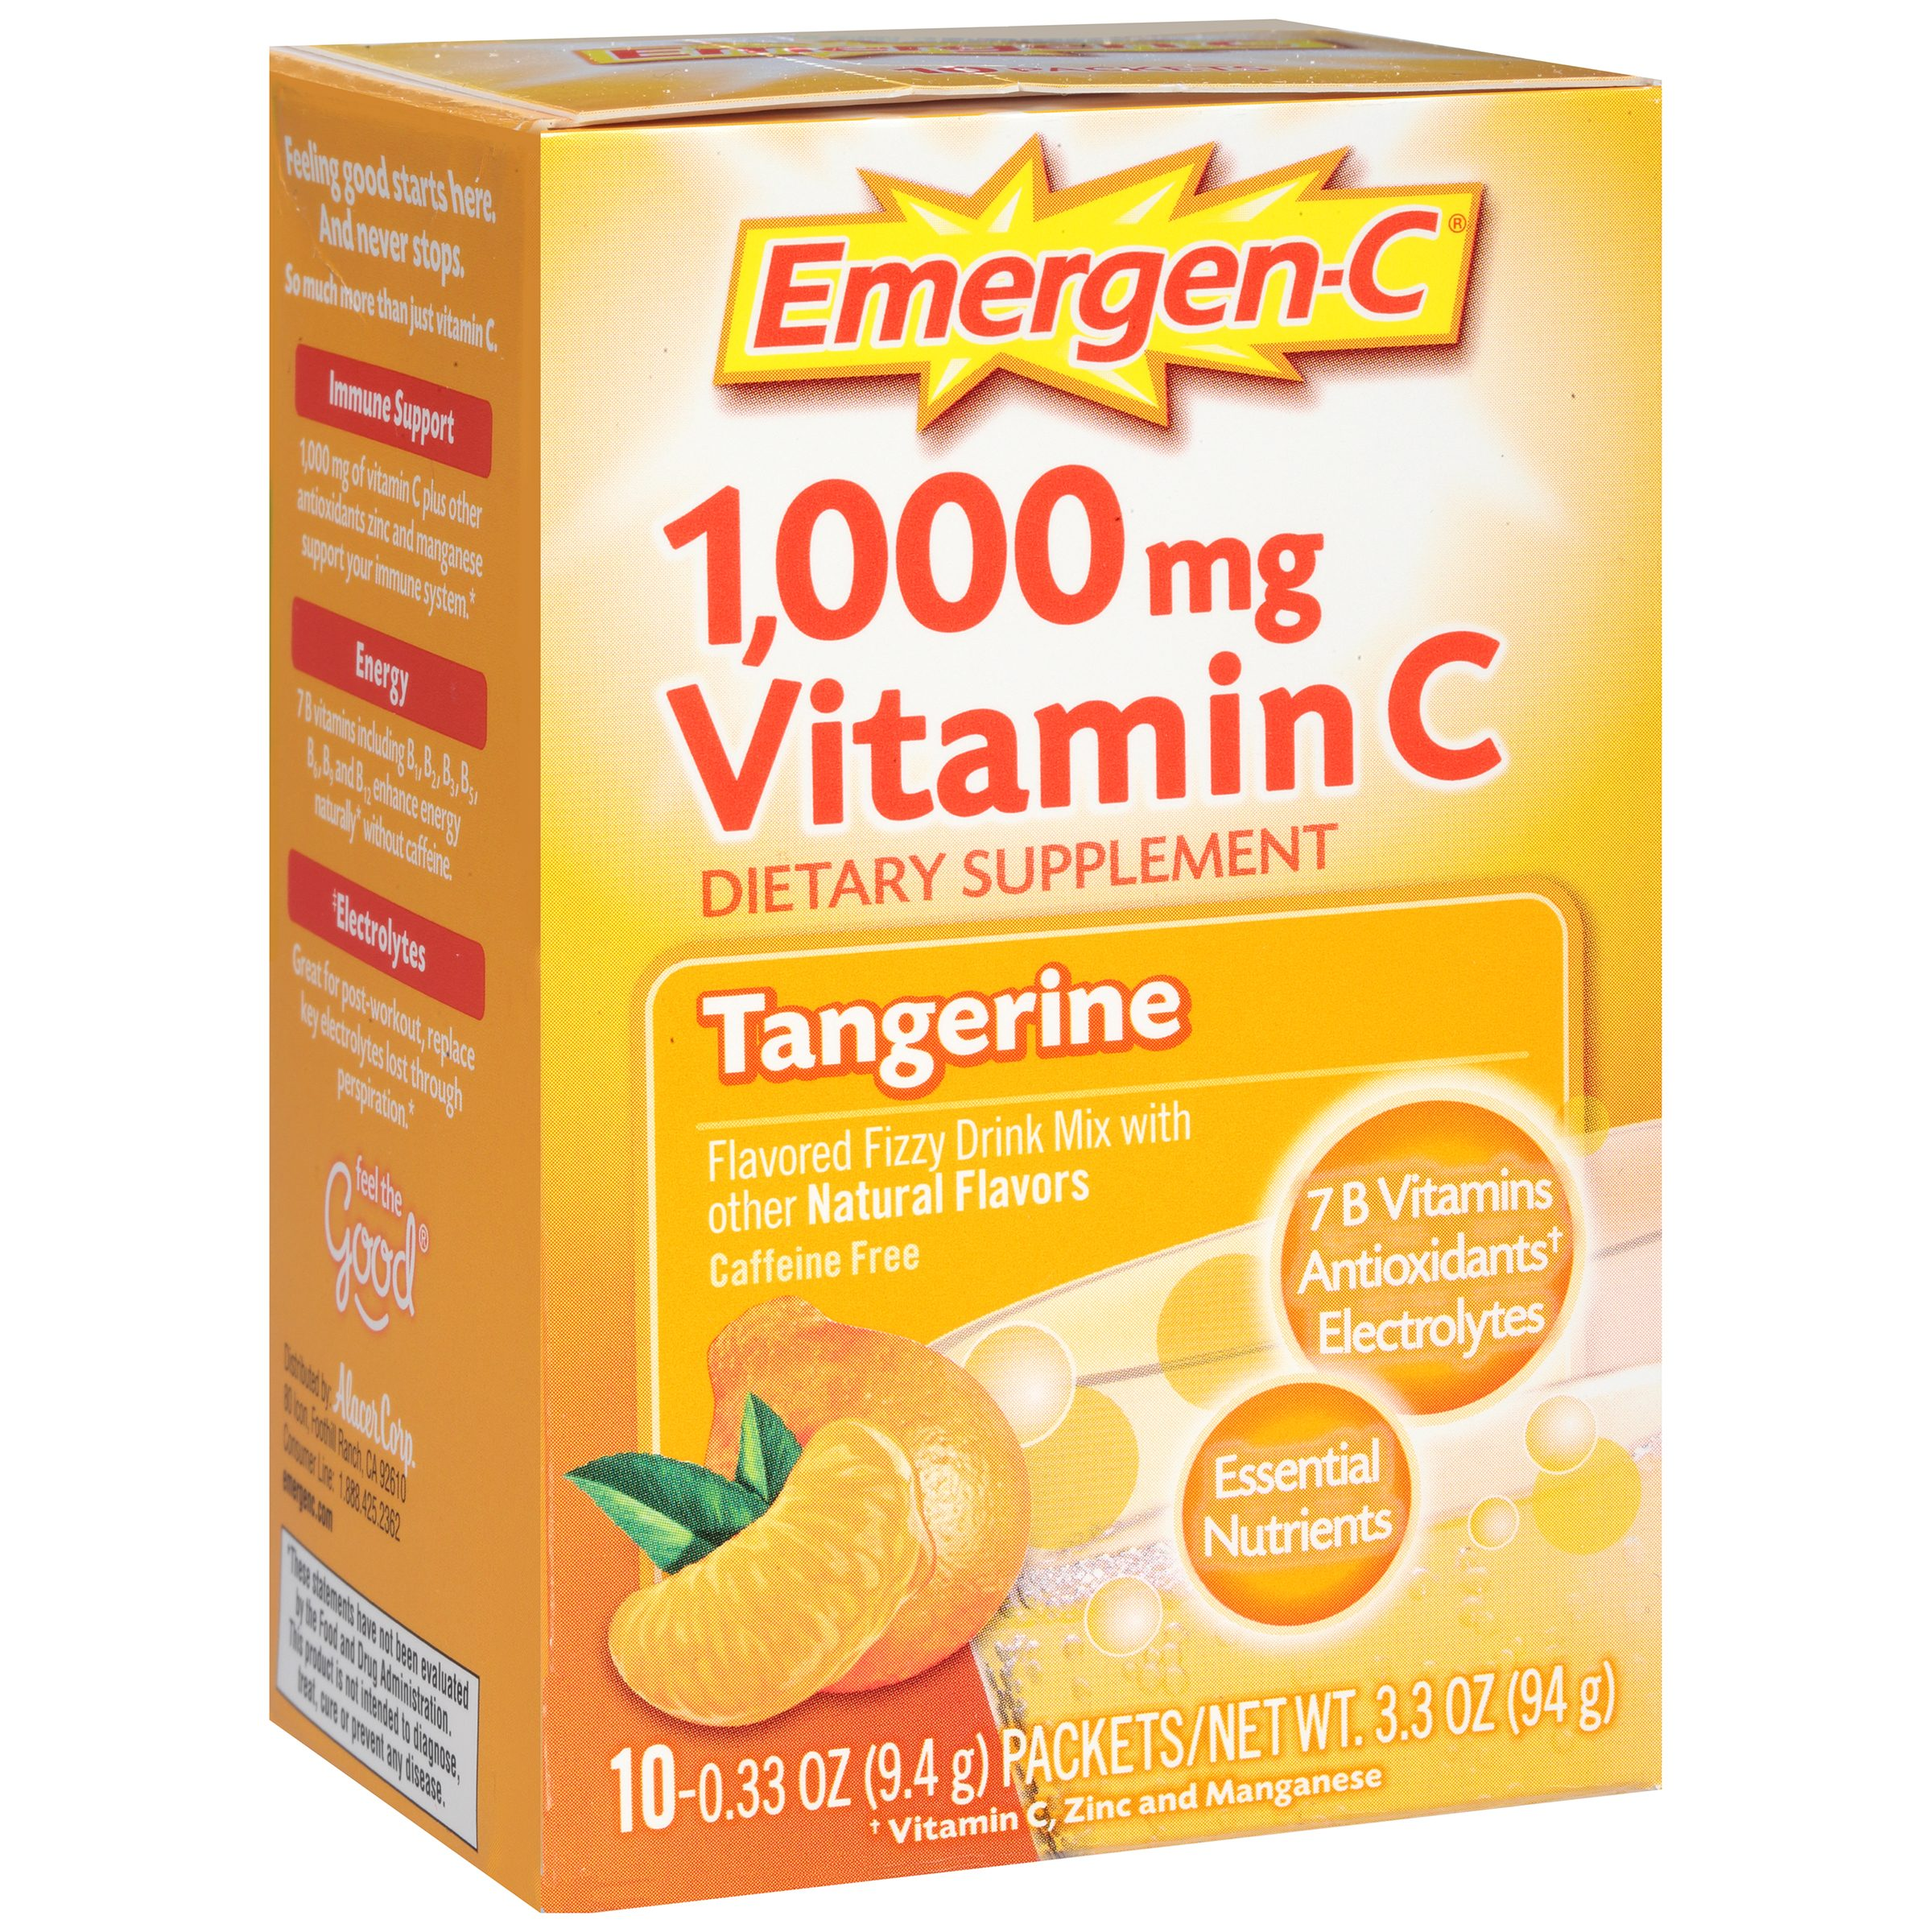 Emergen-C (10 Count, Tangerine Flavor) Dietary Supplement Fizzy Drink Mix with 1000 mg Vitamin C, 0.33 Ounce Packets, Caffeine Free